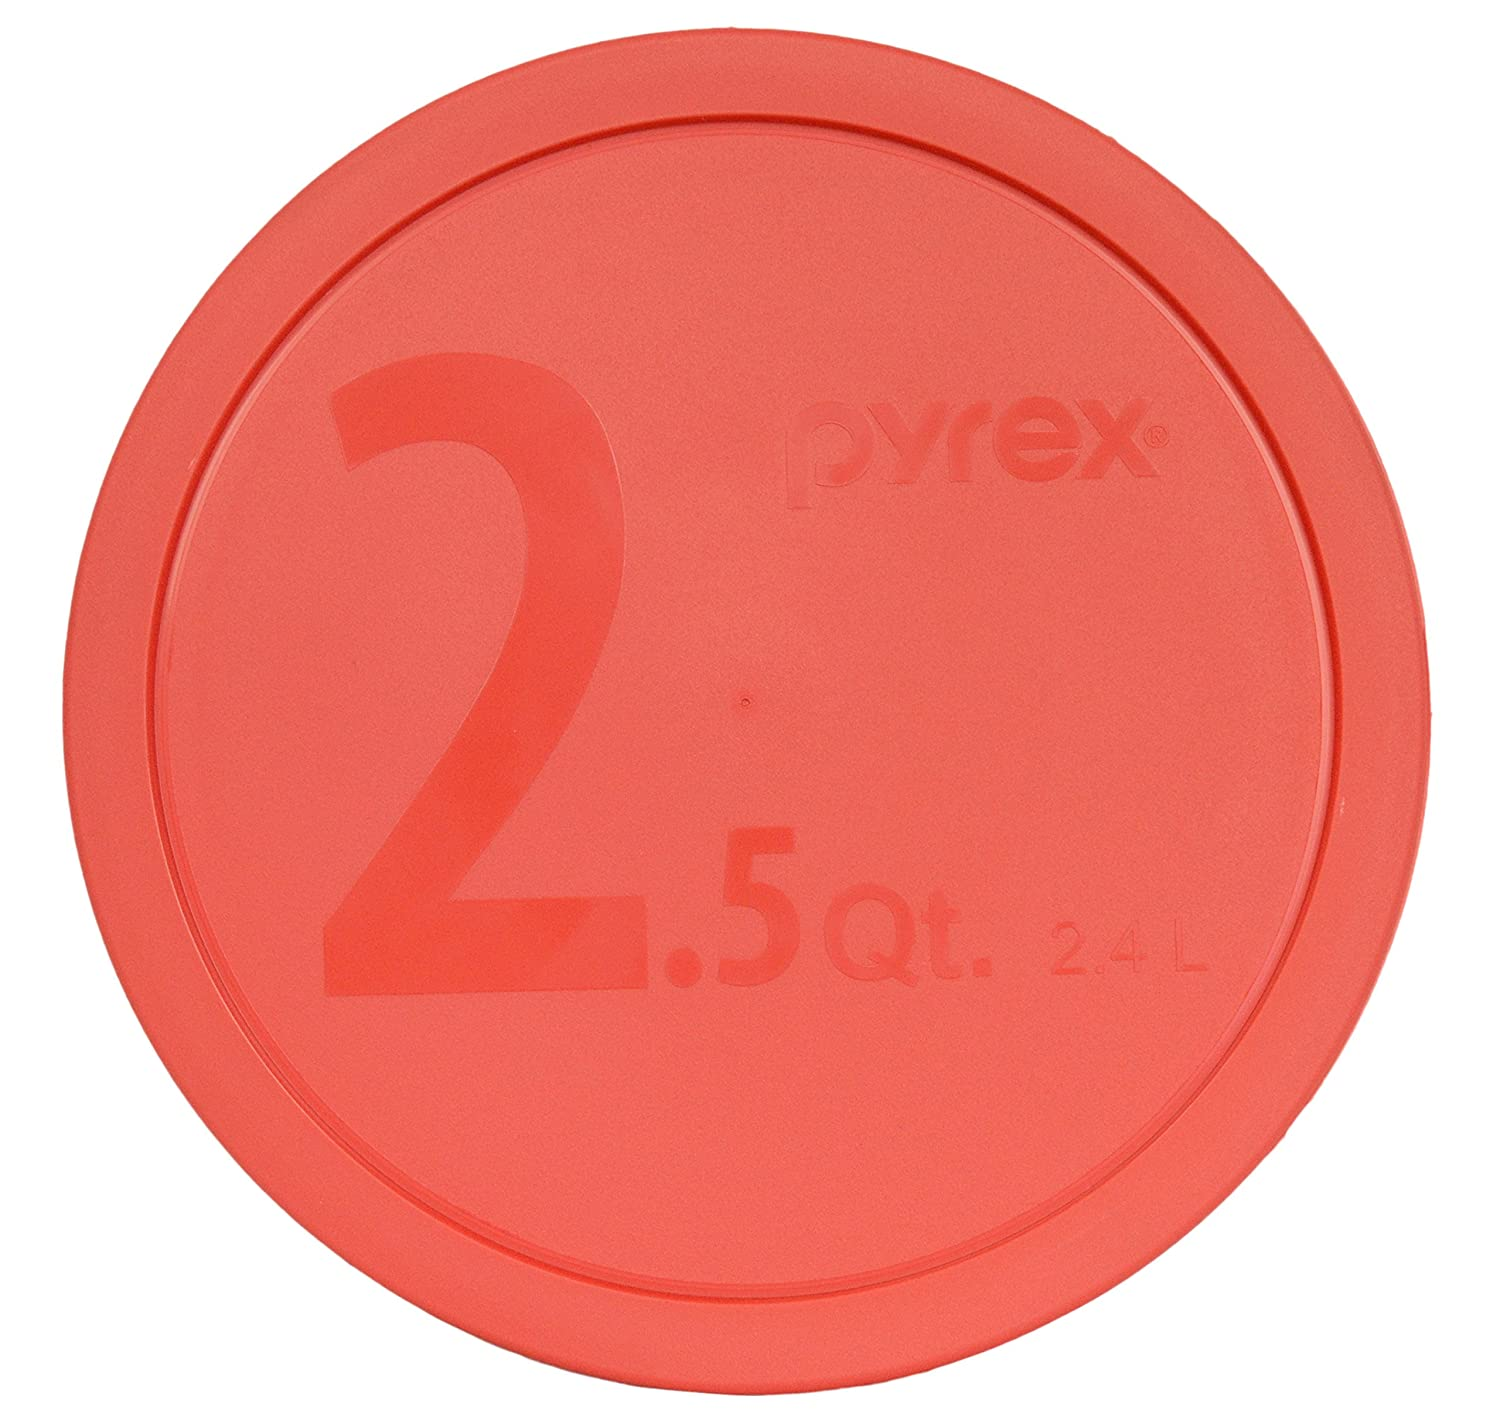 Pyrex 325-PC Round 10-inch Dia. Butterfly Orange 2.5-Quart (2.4L) Mixing Bowl Lid by Pyrex